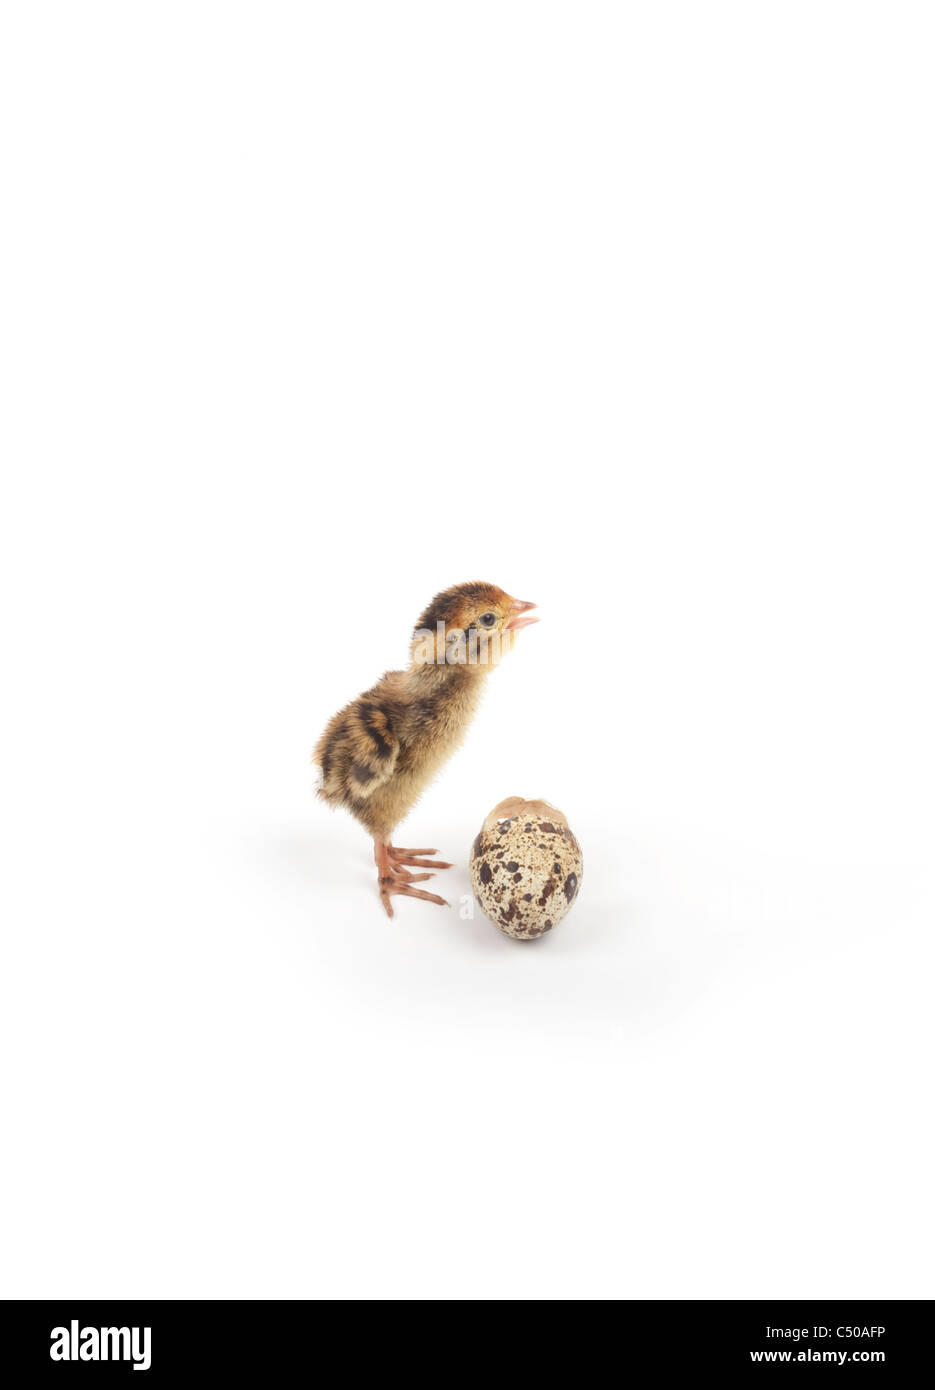 quail chick with broken egg isolated on white background - Stock Image